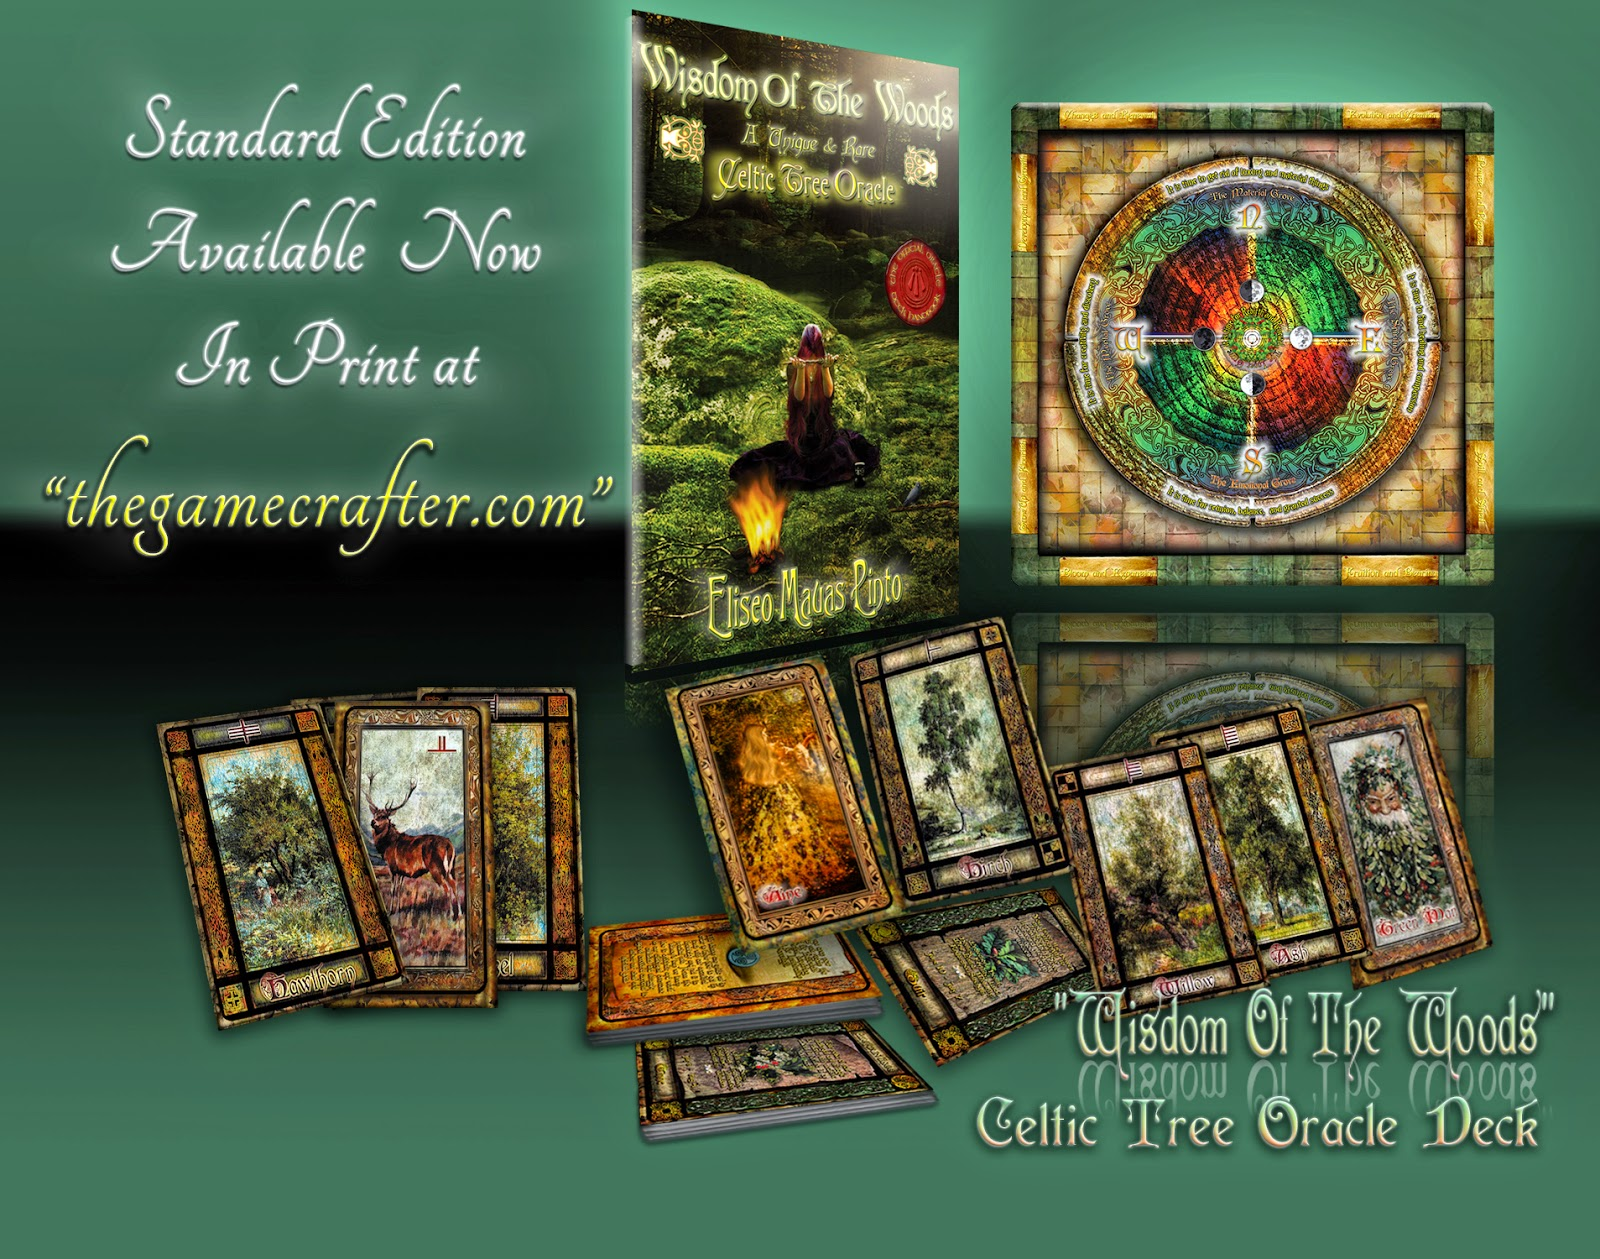 https://www.thegamecrafter.com/games/wisdom-of-the-woods-a-unique-and-rare-celtic-tree-oracle